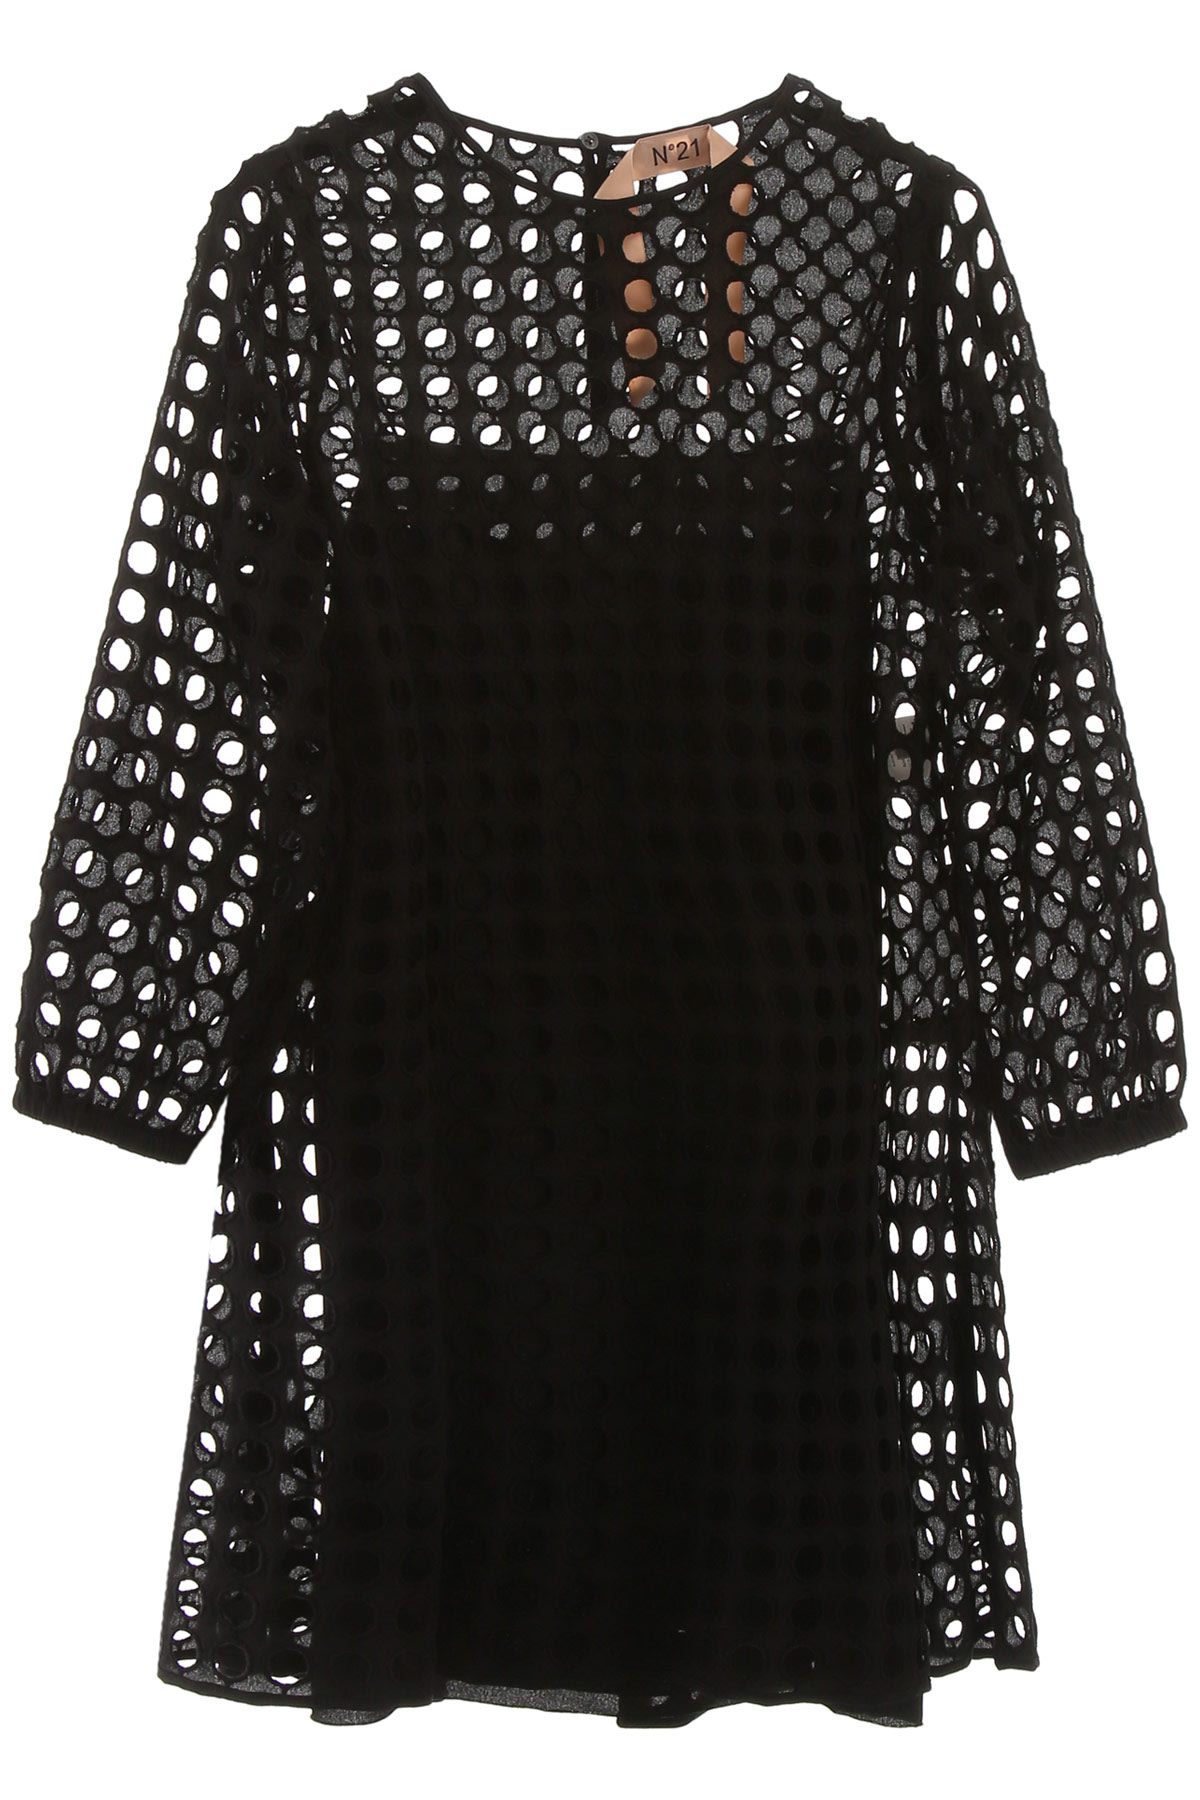 Buy N.21 Perforated Mini Dress online, shop N.21 with free shipping